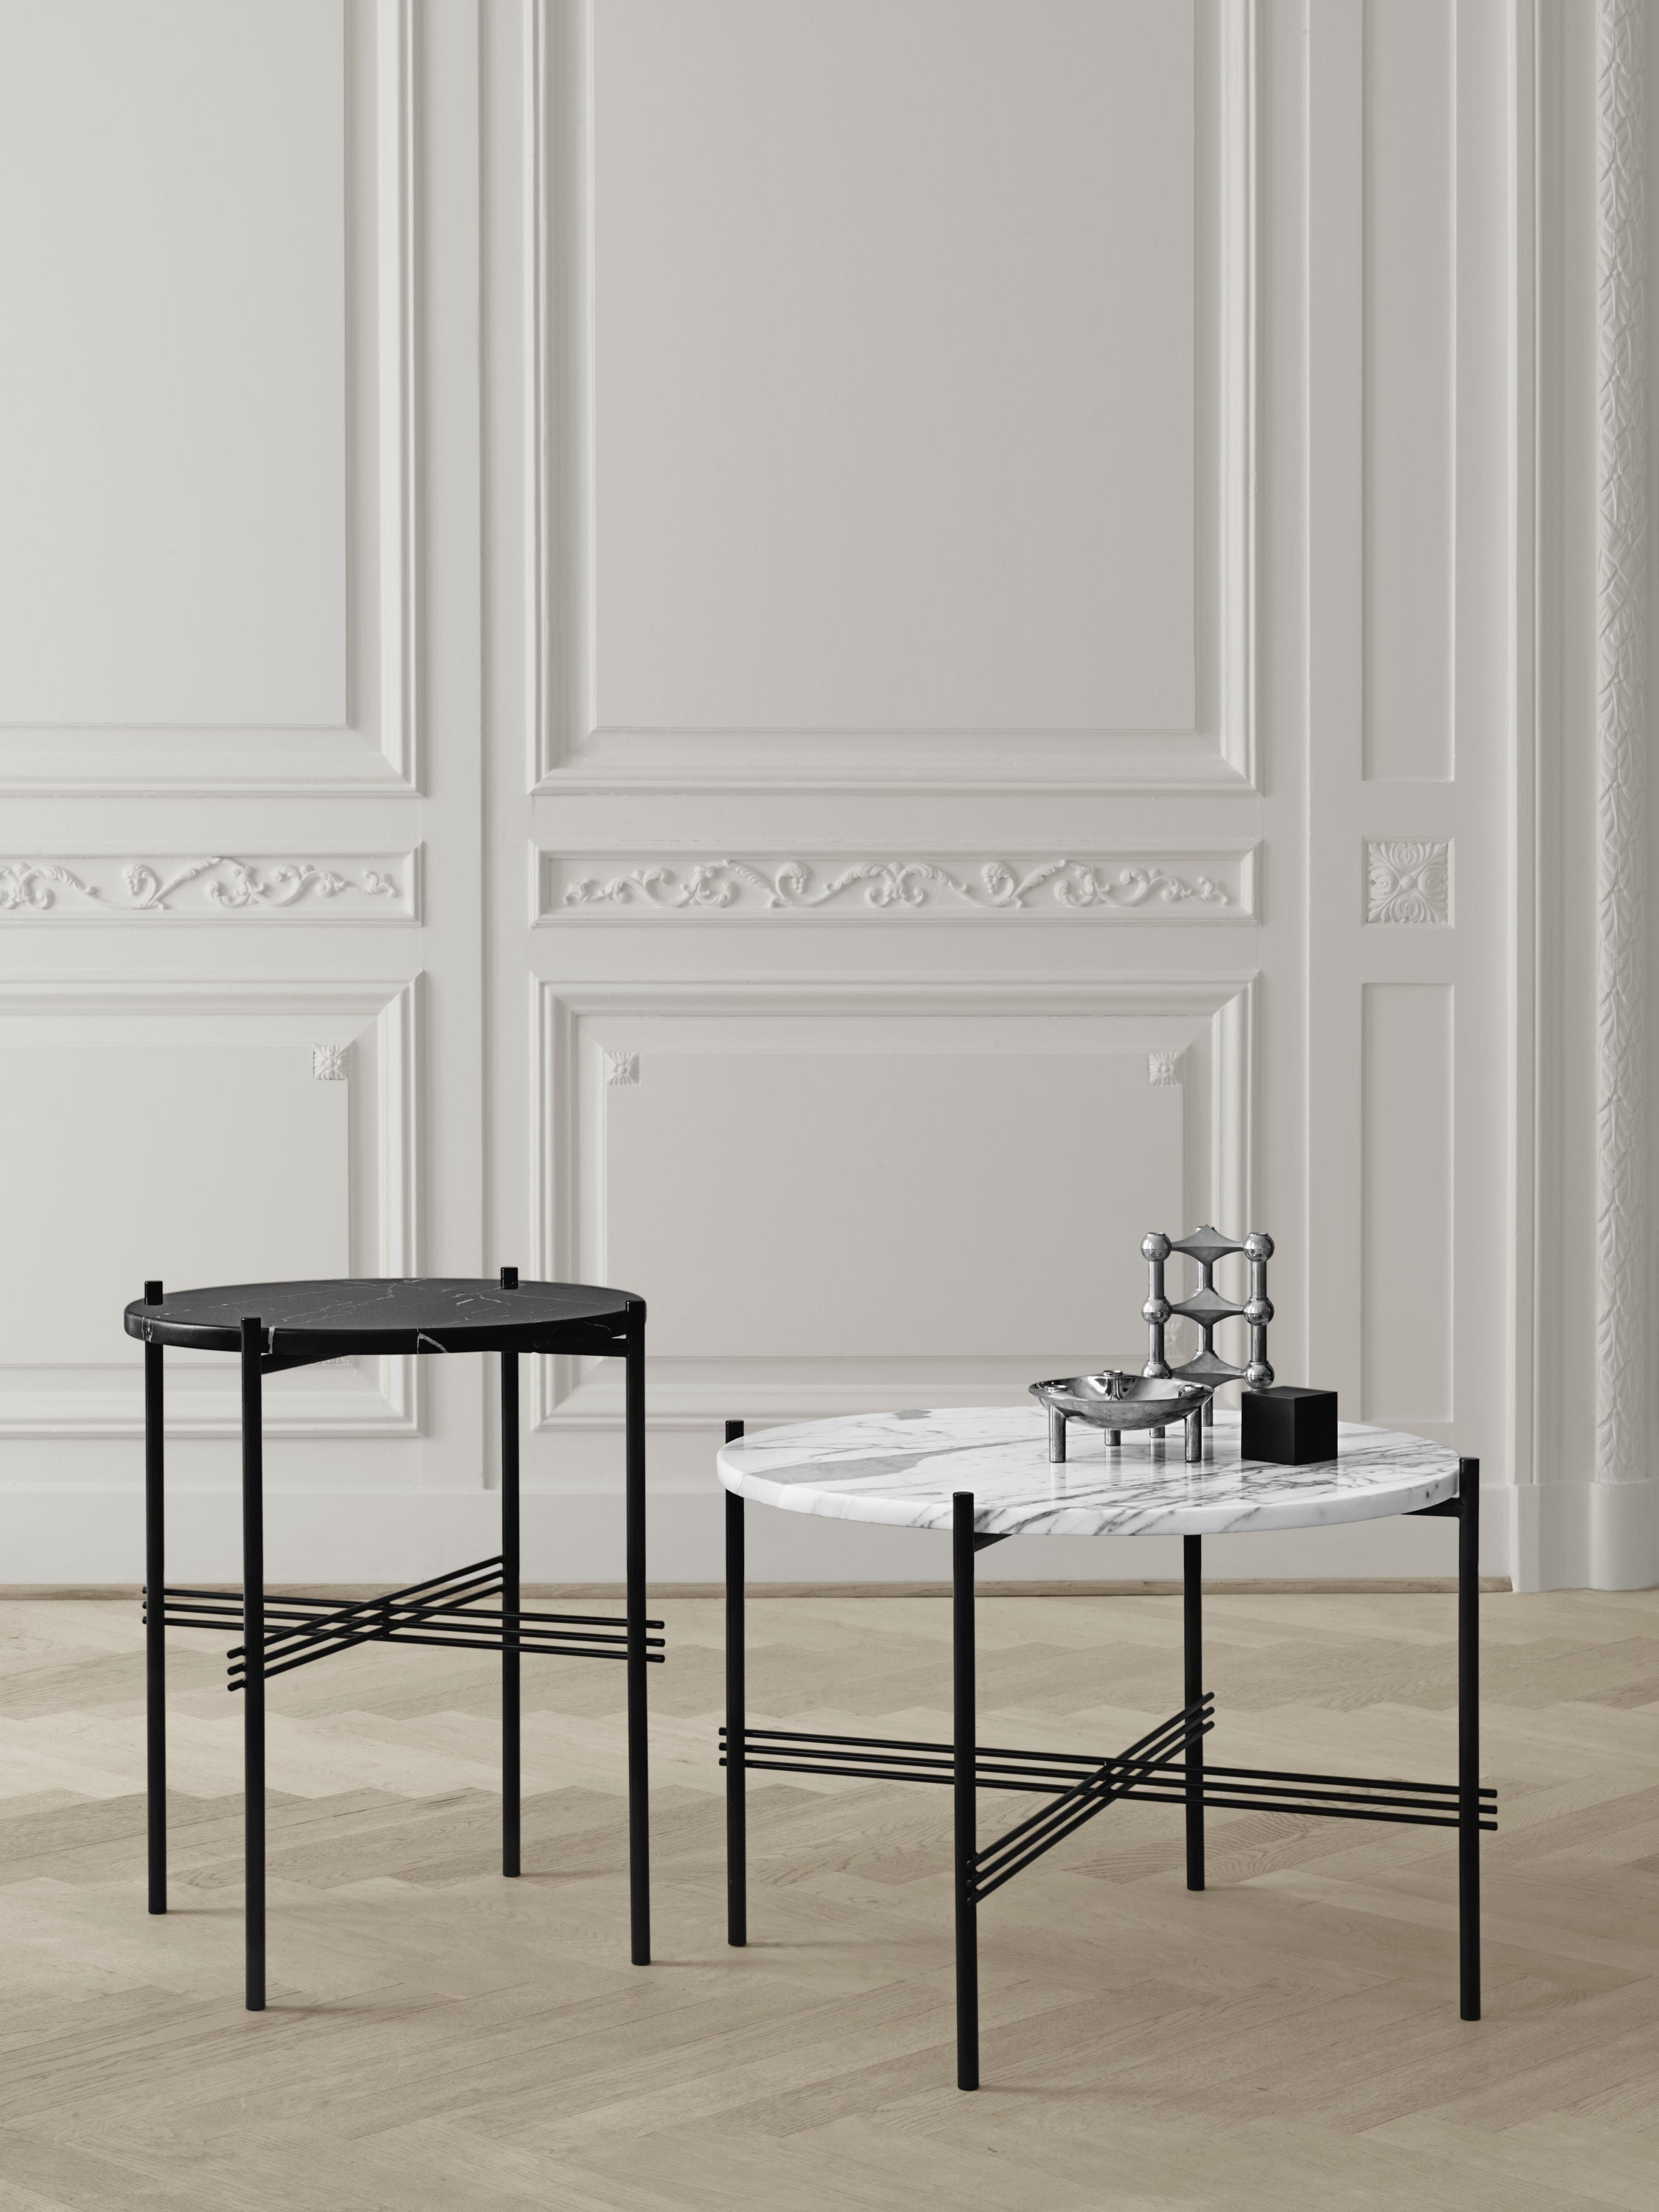 TS Coffee Table - Dia 105 Black base, Marble white top fra GUBI